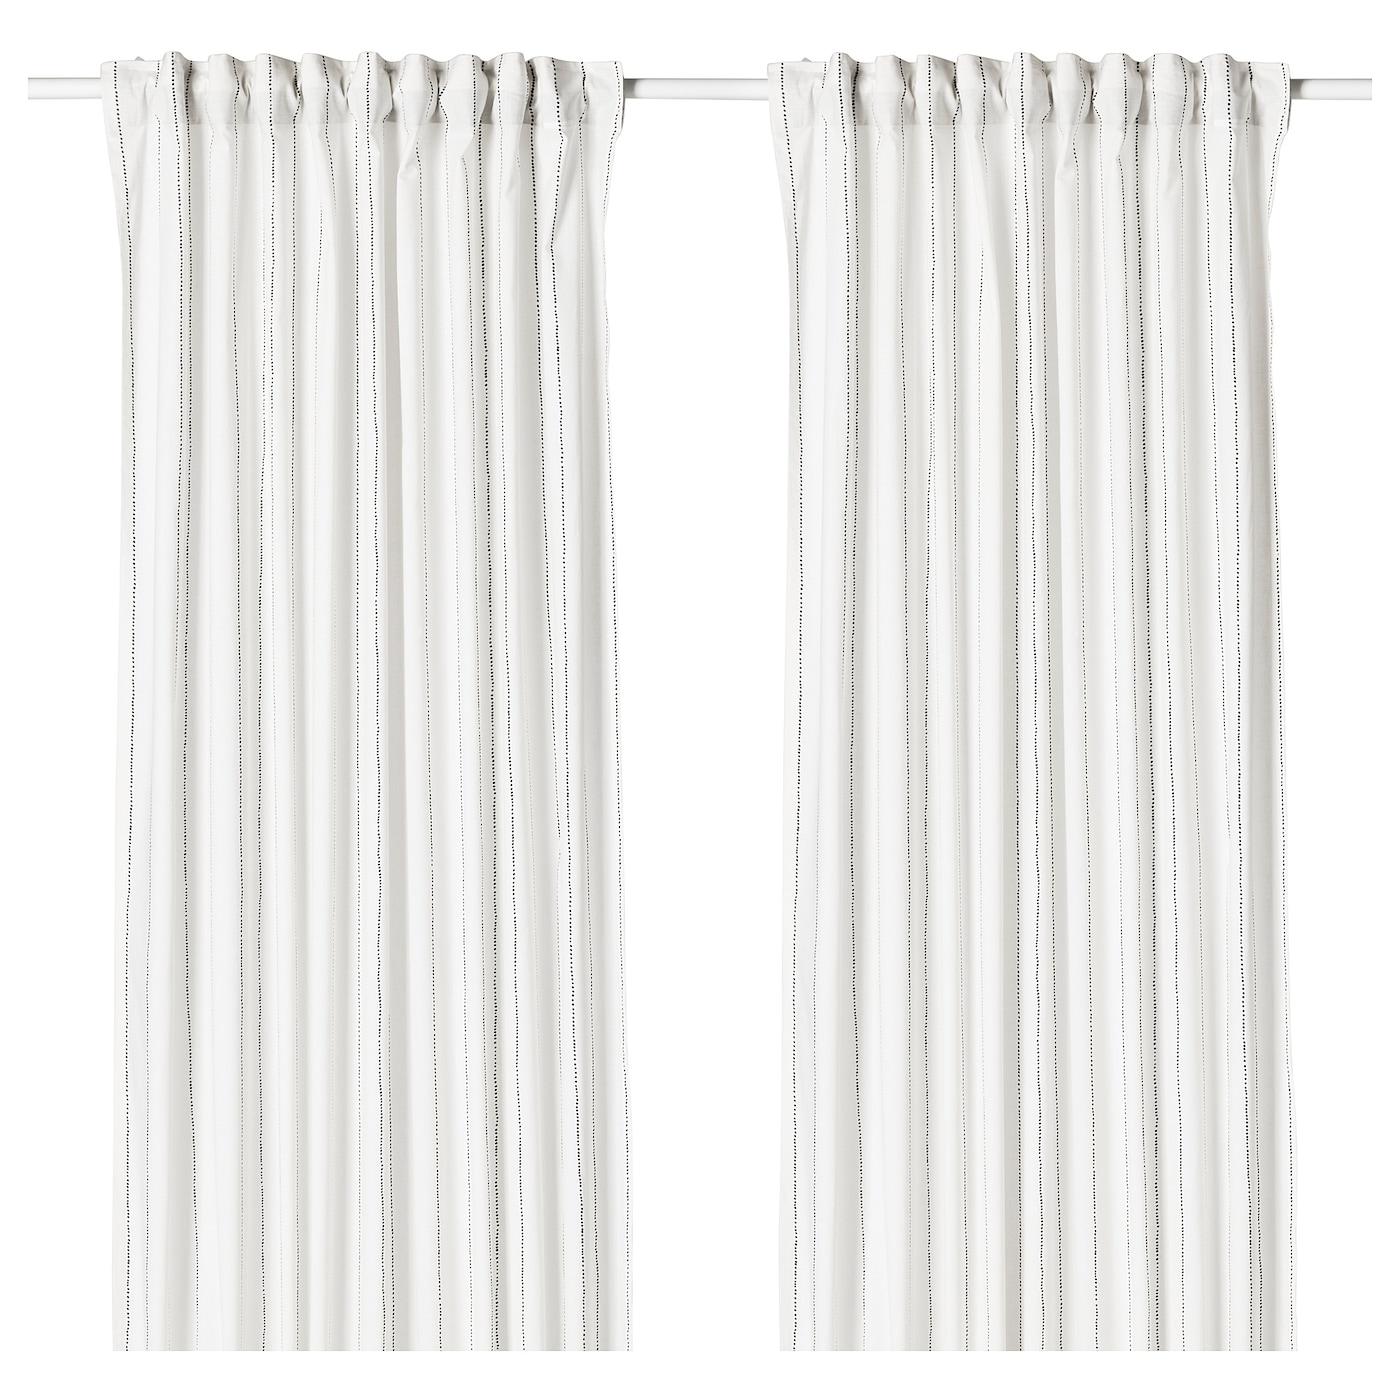 IKEA EBBALISA curtains, 1 pair The curtains can be used on a curtain rod or a curtain track.